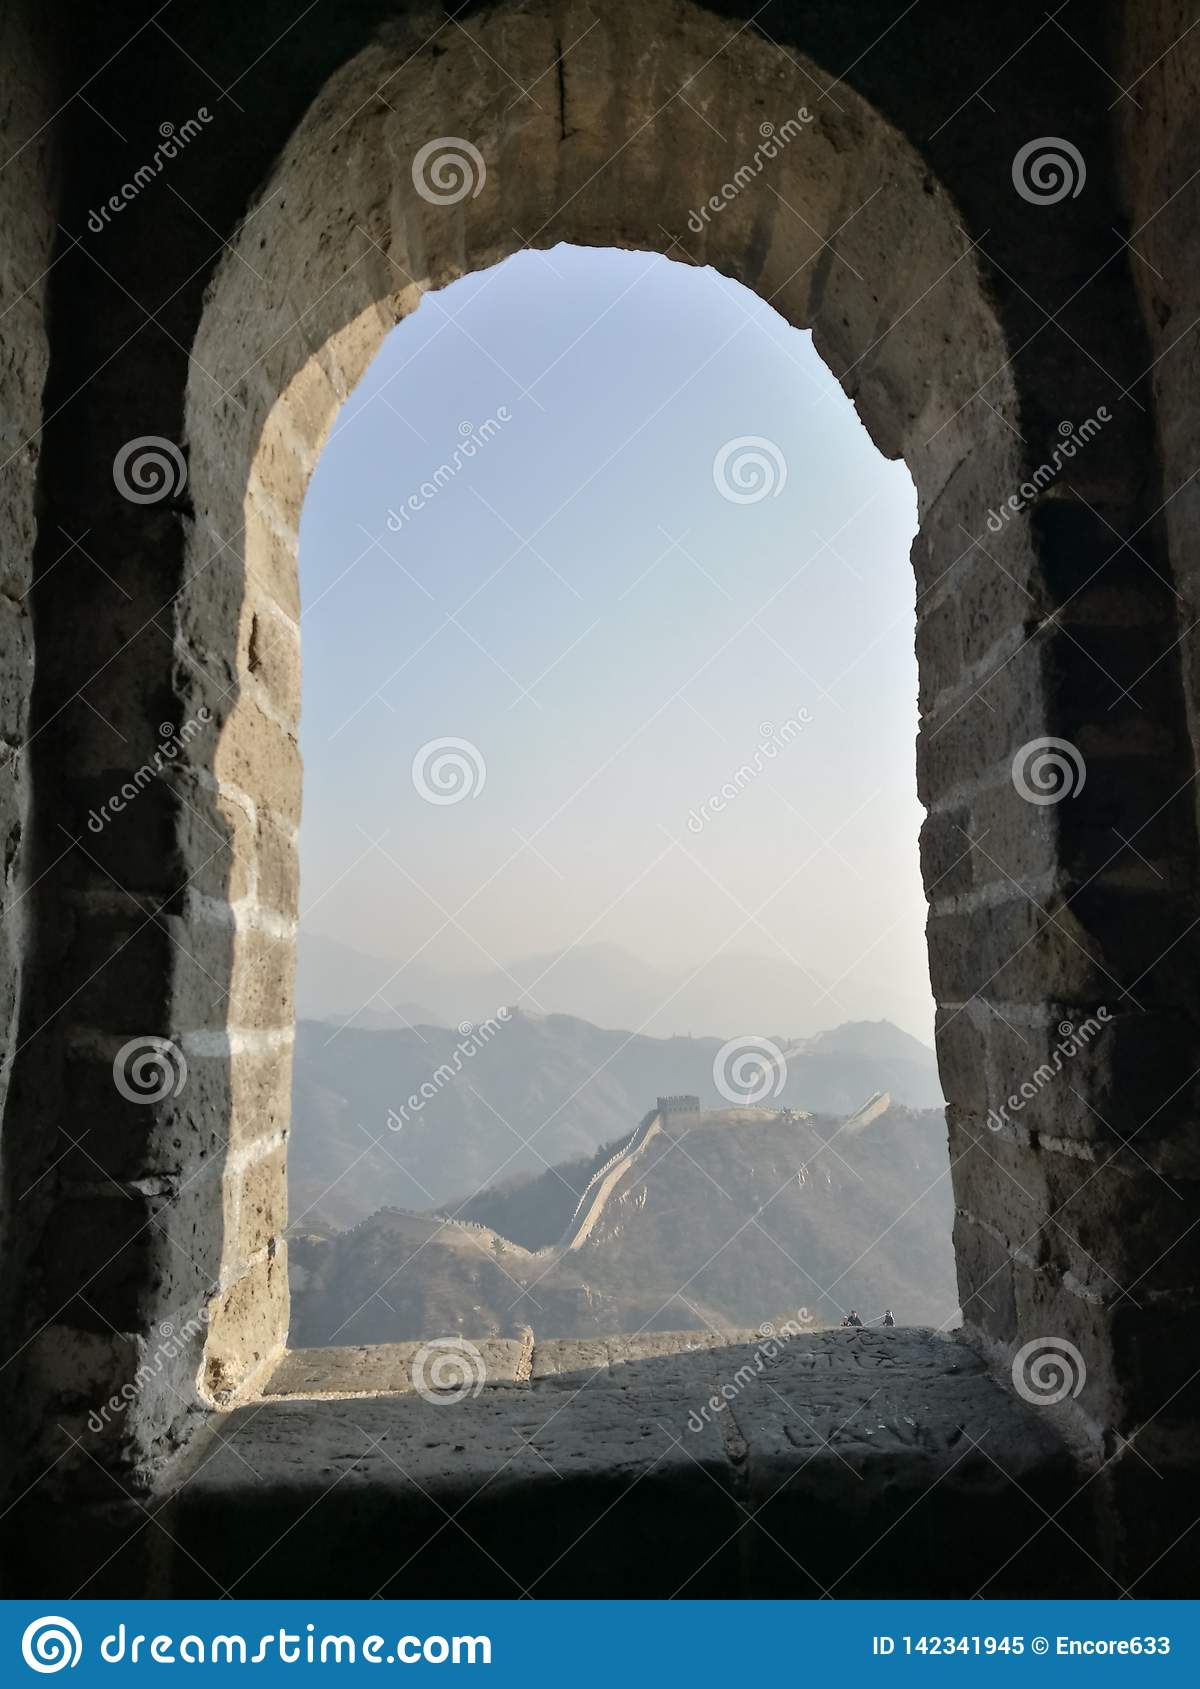 Look at the Great Wall through the window hole